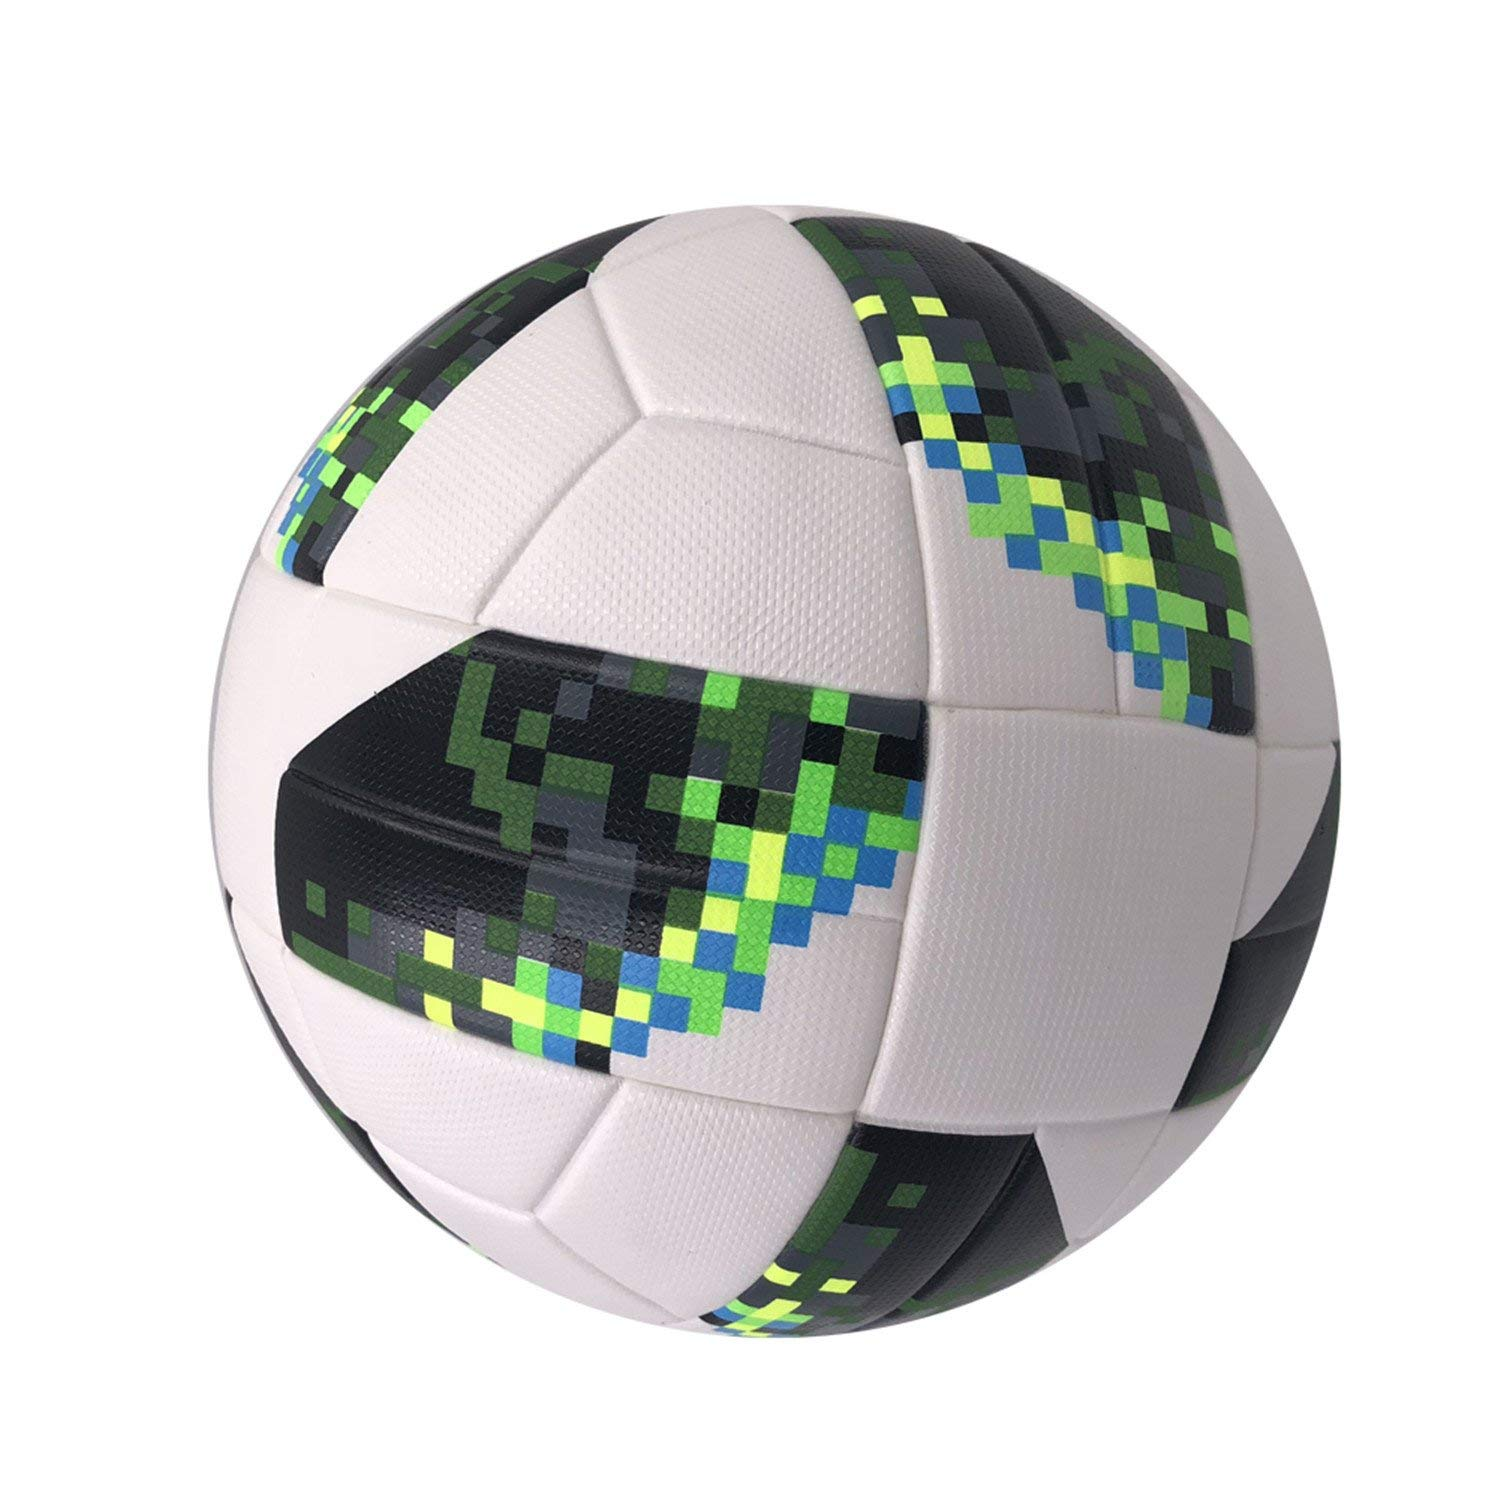 f69ea4be4d Get Quotations · Nelliewins Premier Pu Football Official Soccer Ball Size 5  Football League Champions 2018 Sports Training Ball